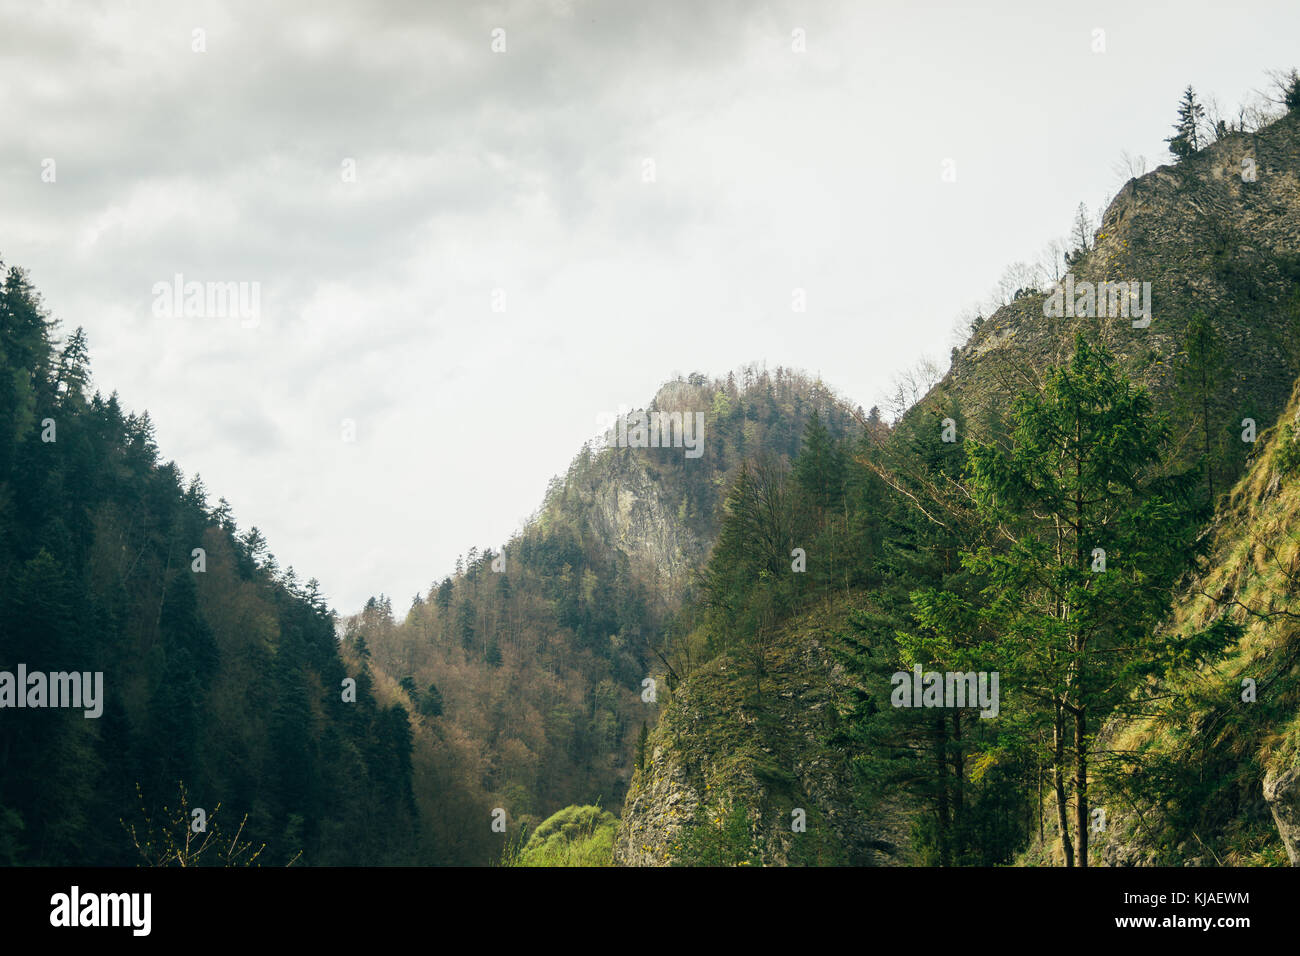 Pieniny mountains in spring - Stock Image